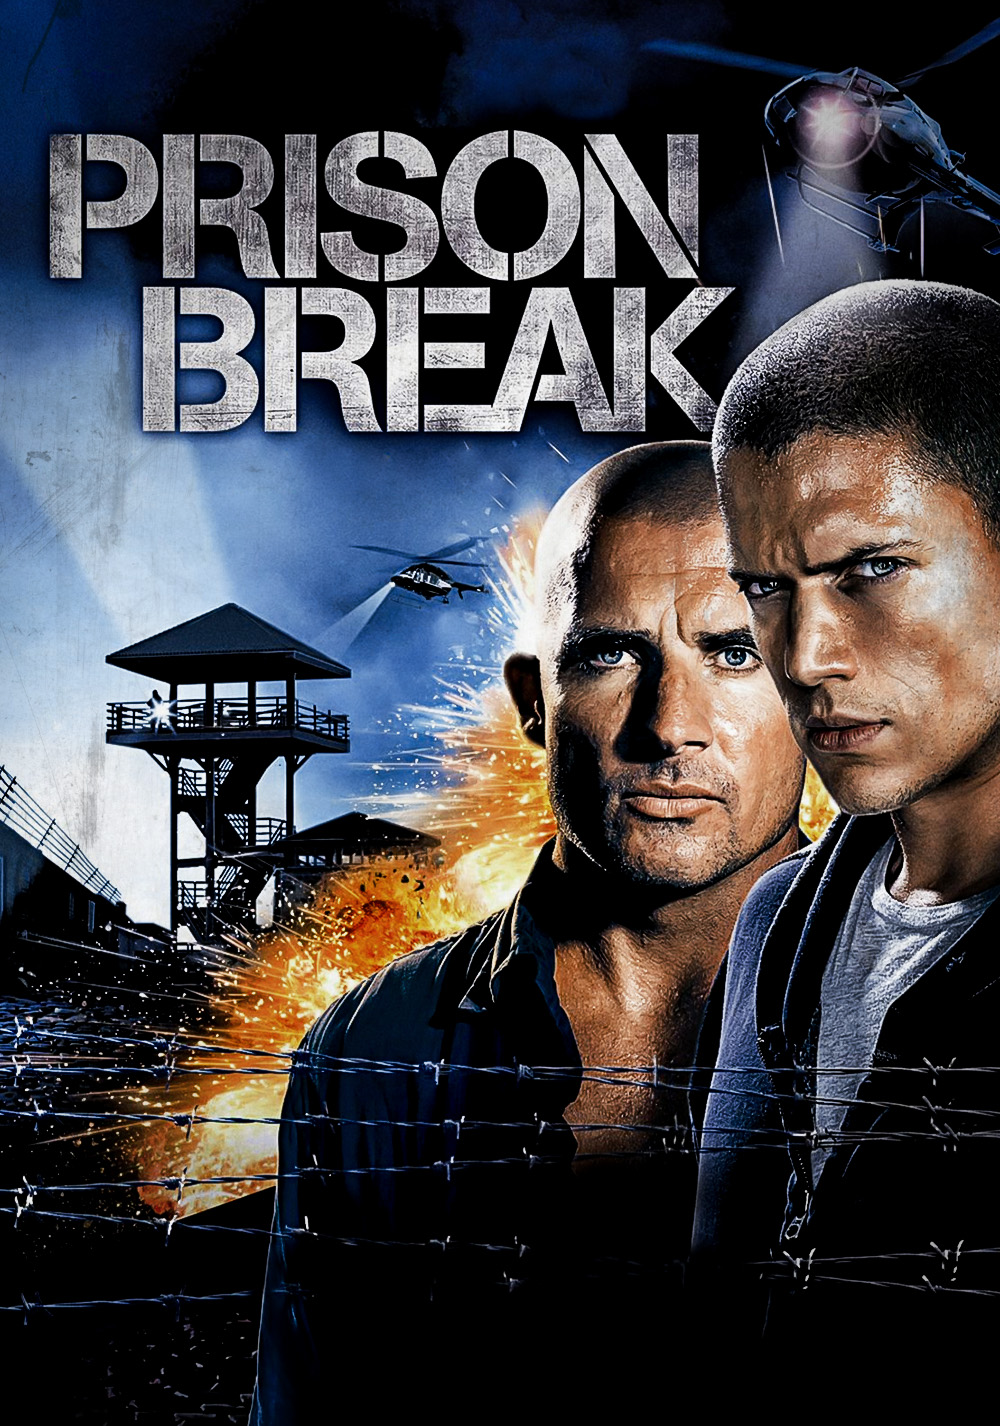 descargar prison break en hd 1080p serie completa